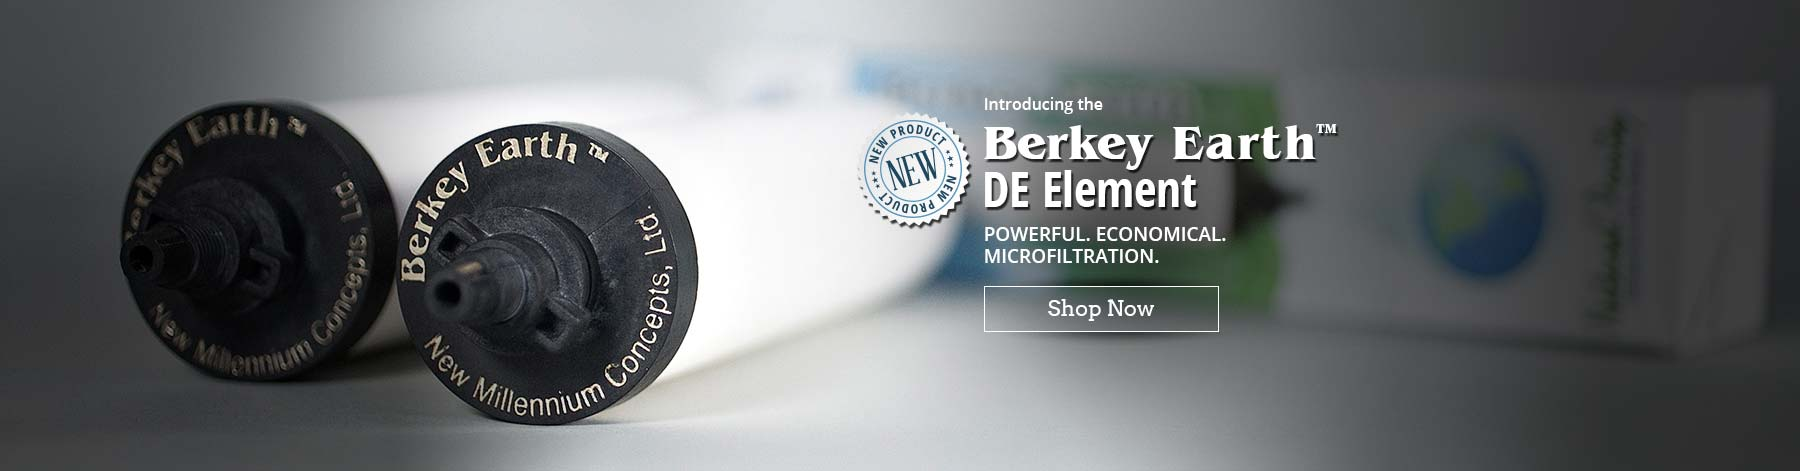 NEW! Berkey Earth DE Element - Powerful. Economical. Microfiltration. Click slide to shop now